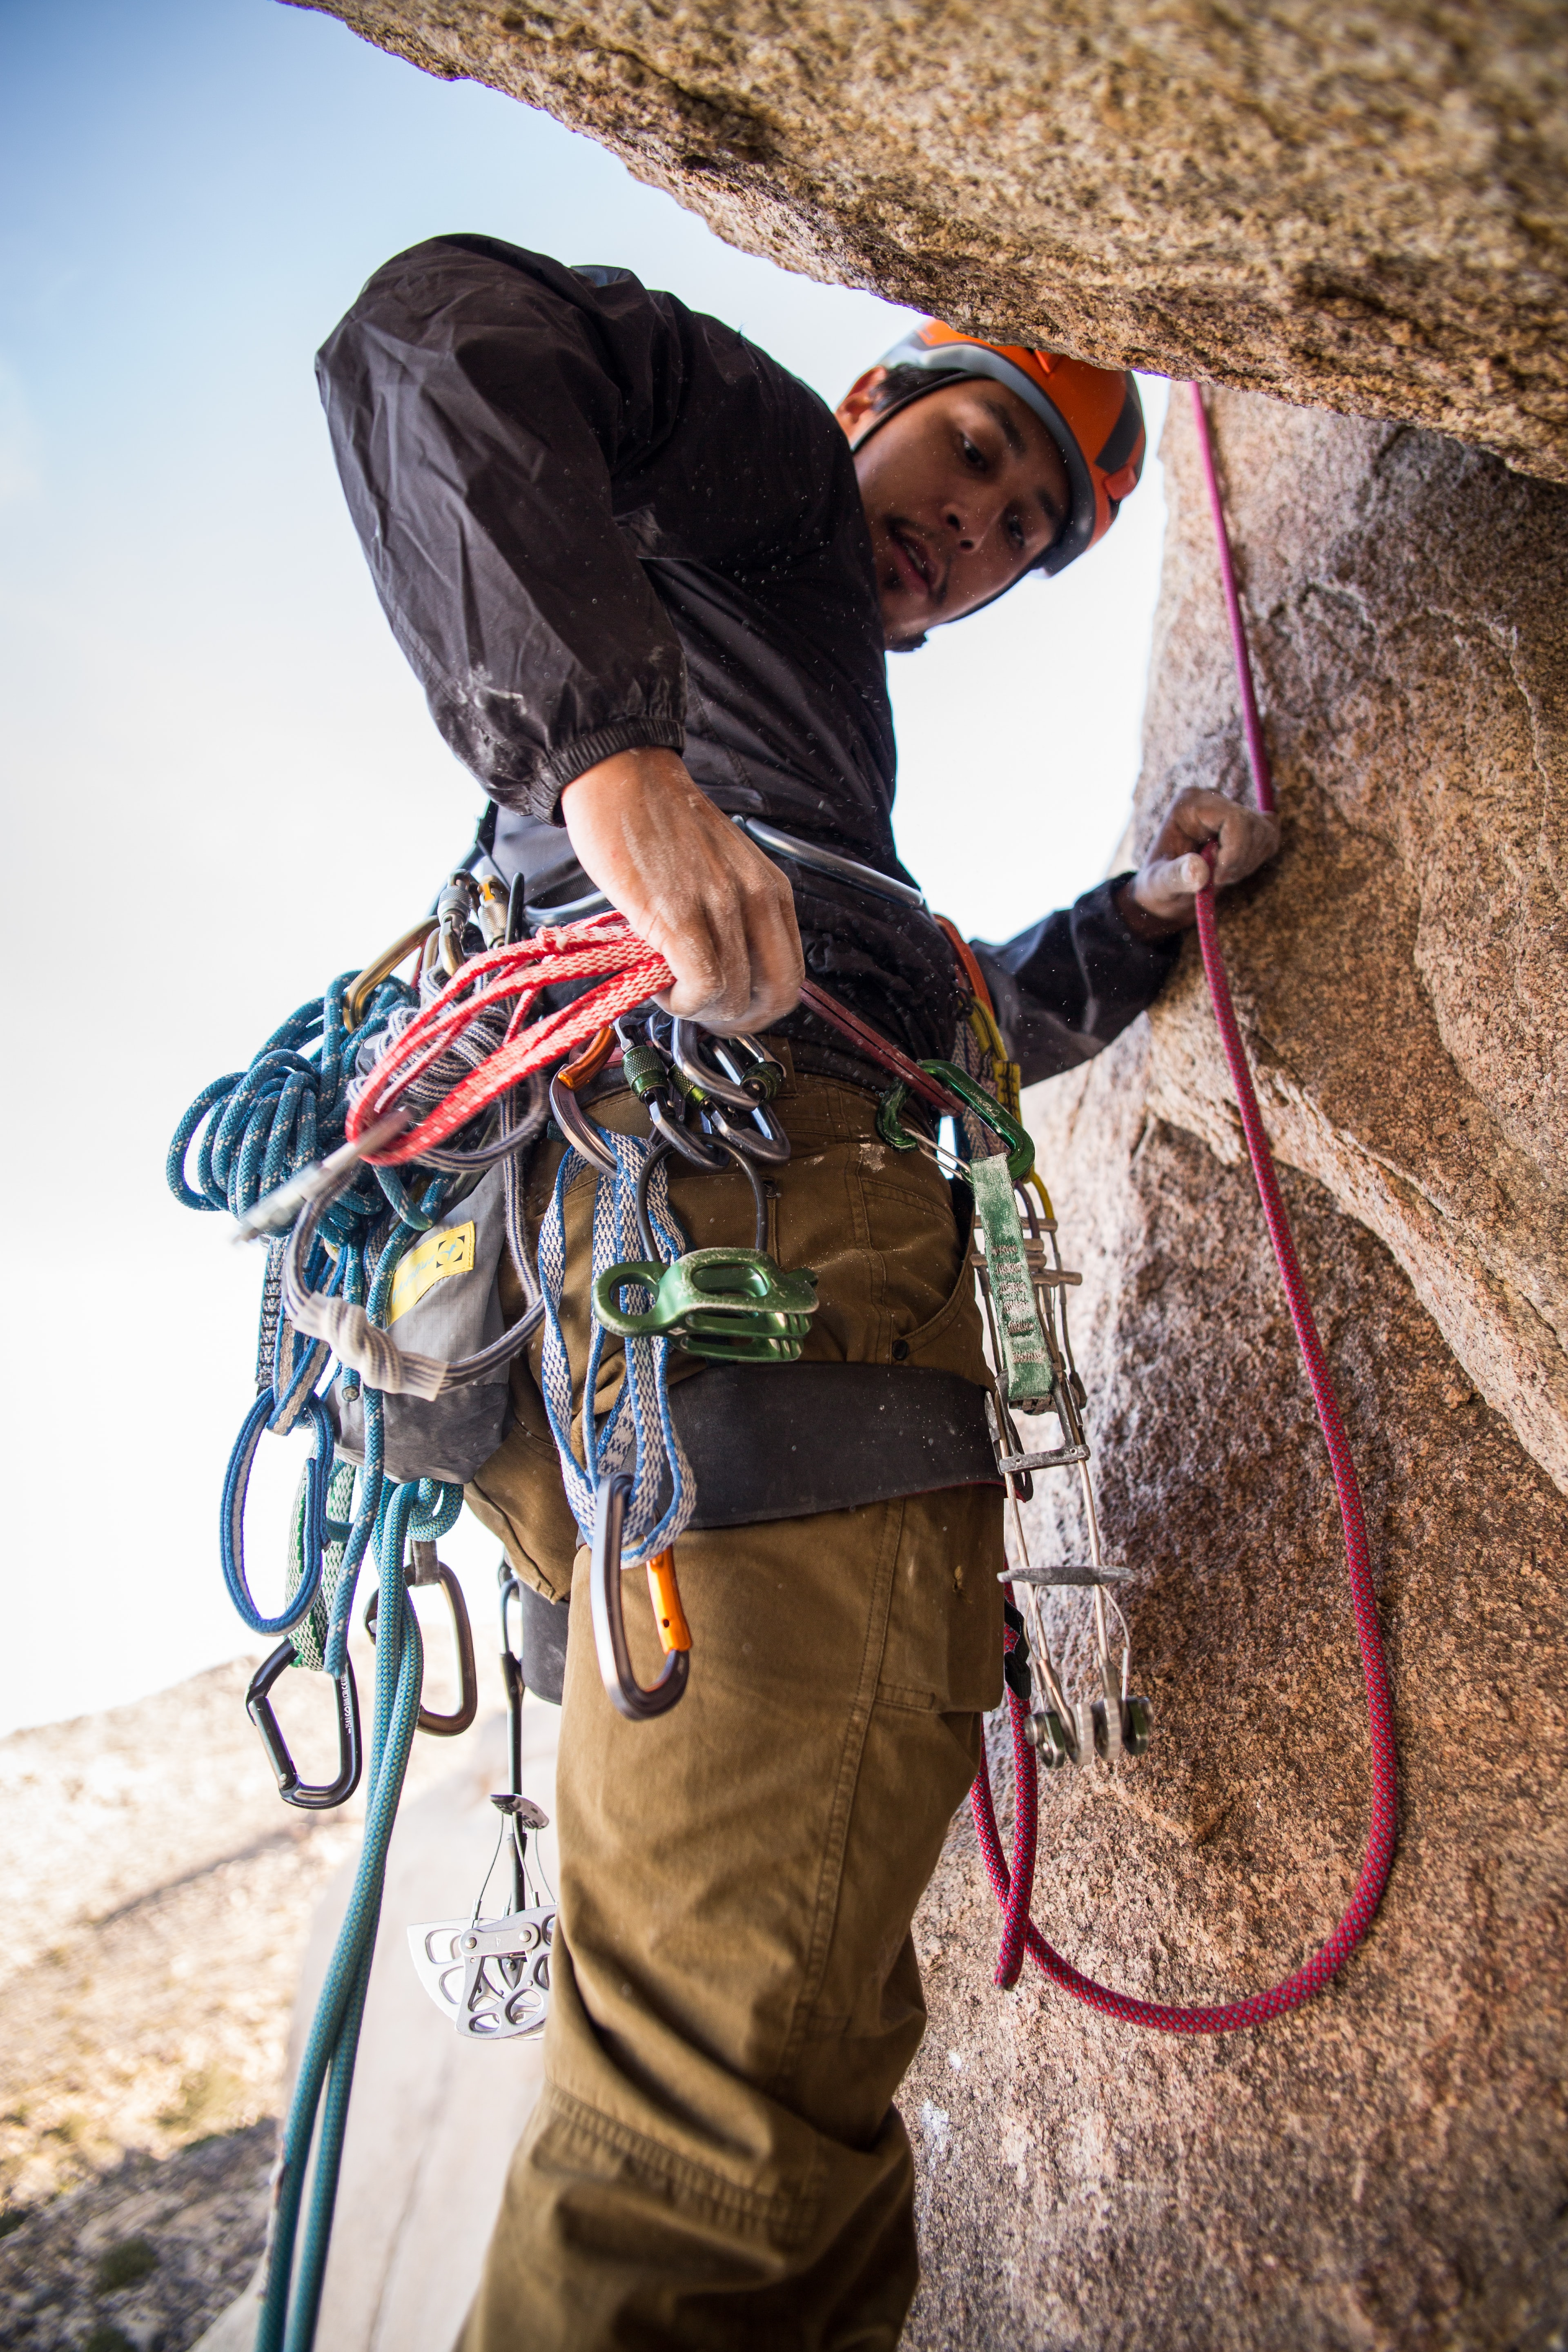 rock climber holding red rope strapped on waist while on side of brown boulder at daytime